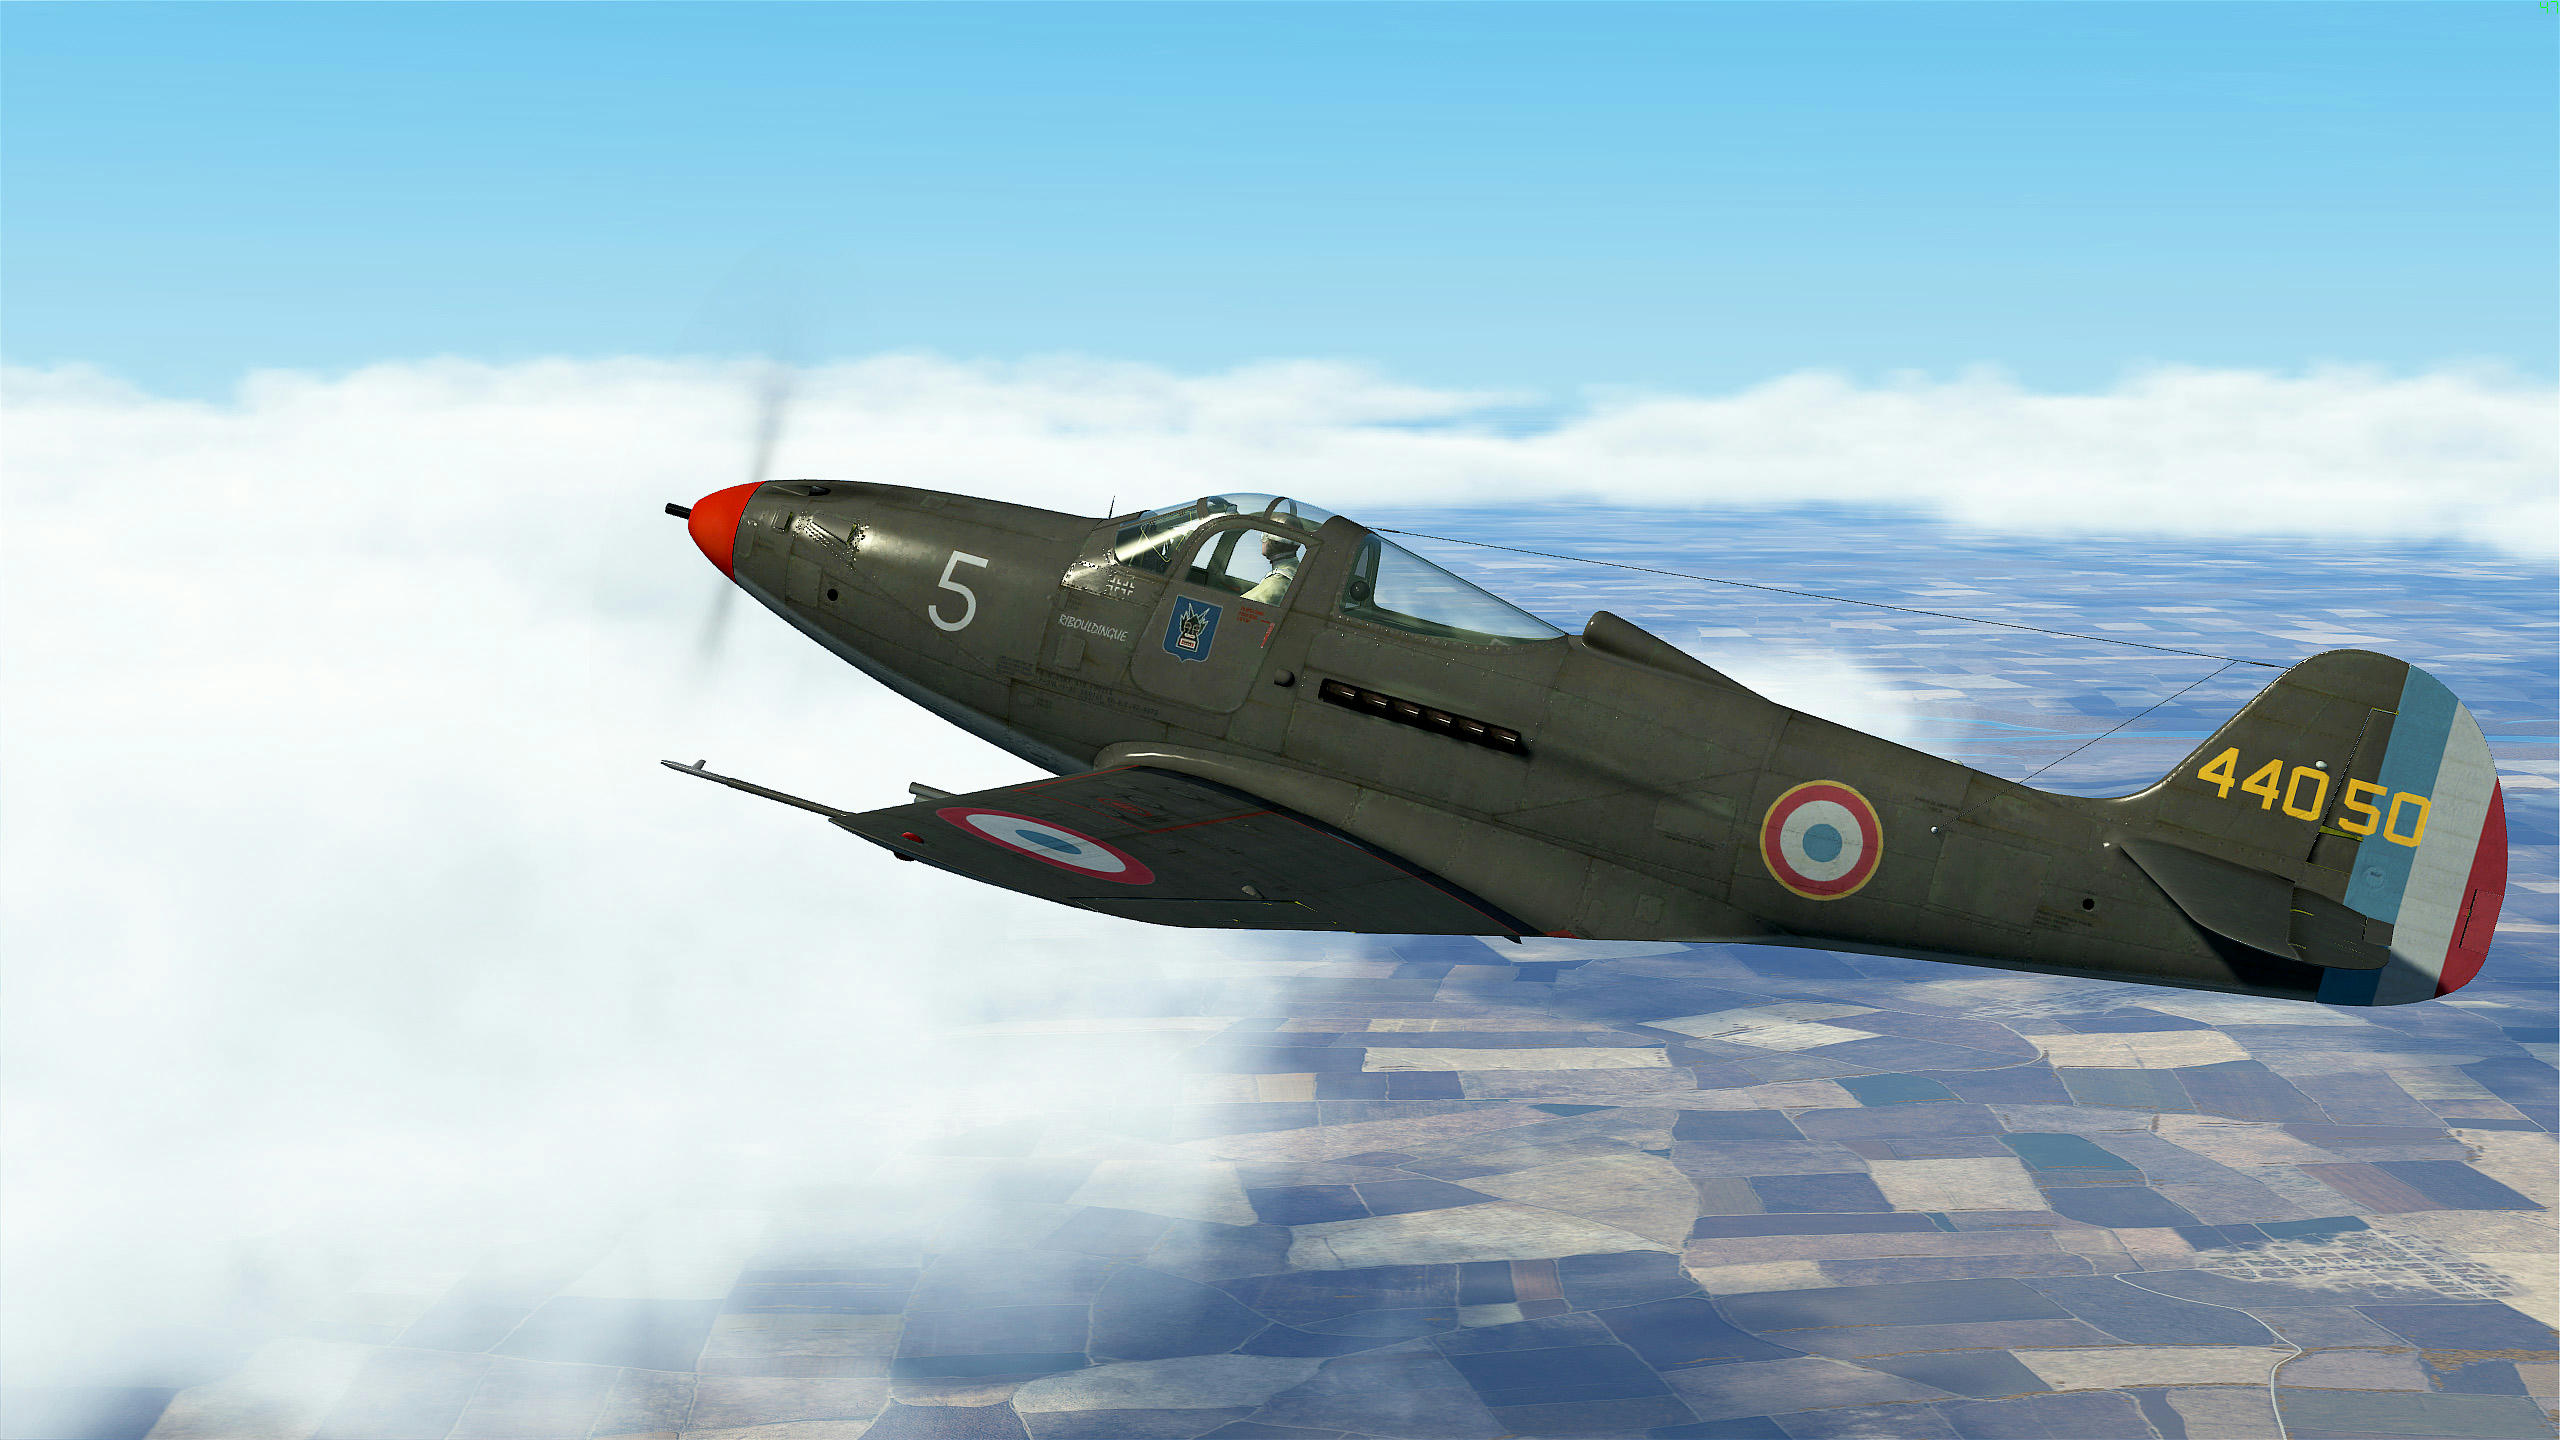 PACK P-39 FRANCAIS 7bsyqlp4axbeqwtzg